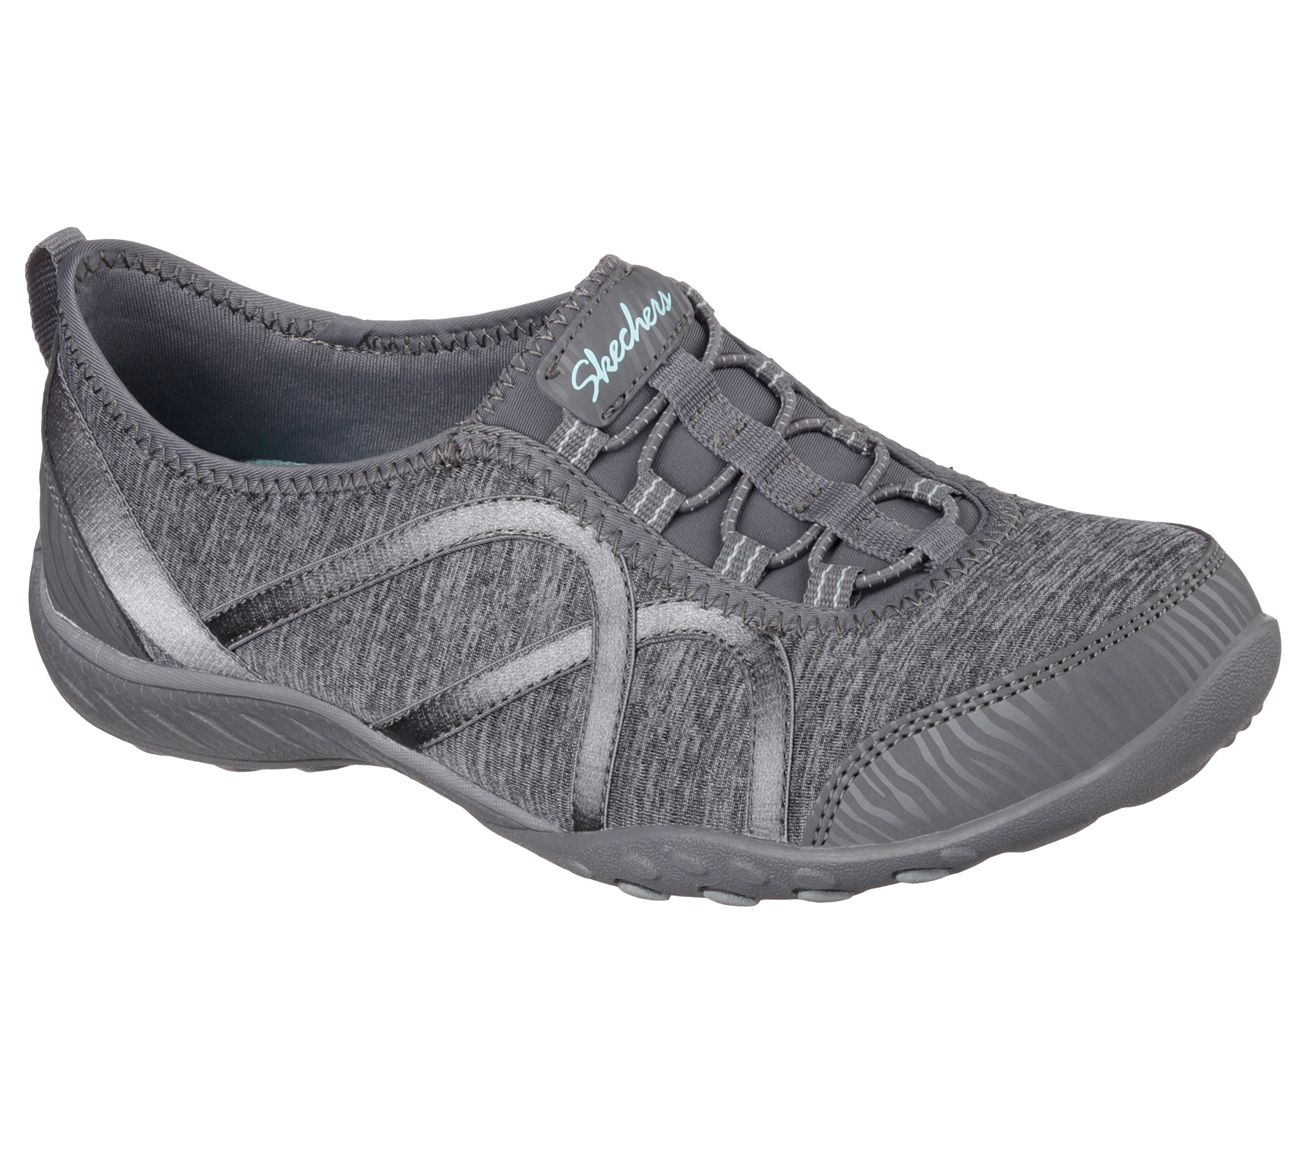 Relaxed Fit Breathe Easy  Fortune Sketchers Shoes WomenBreathe EasyTeacher  ClothesNike